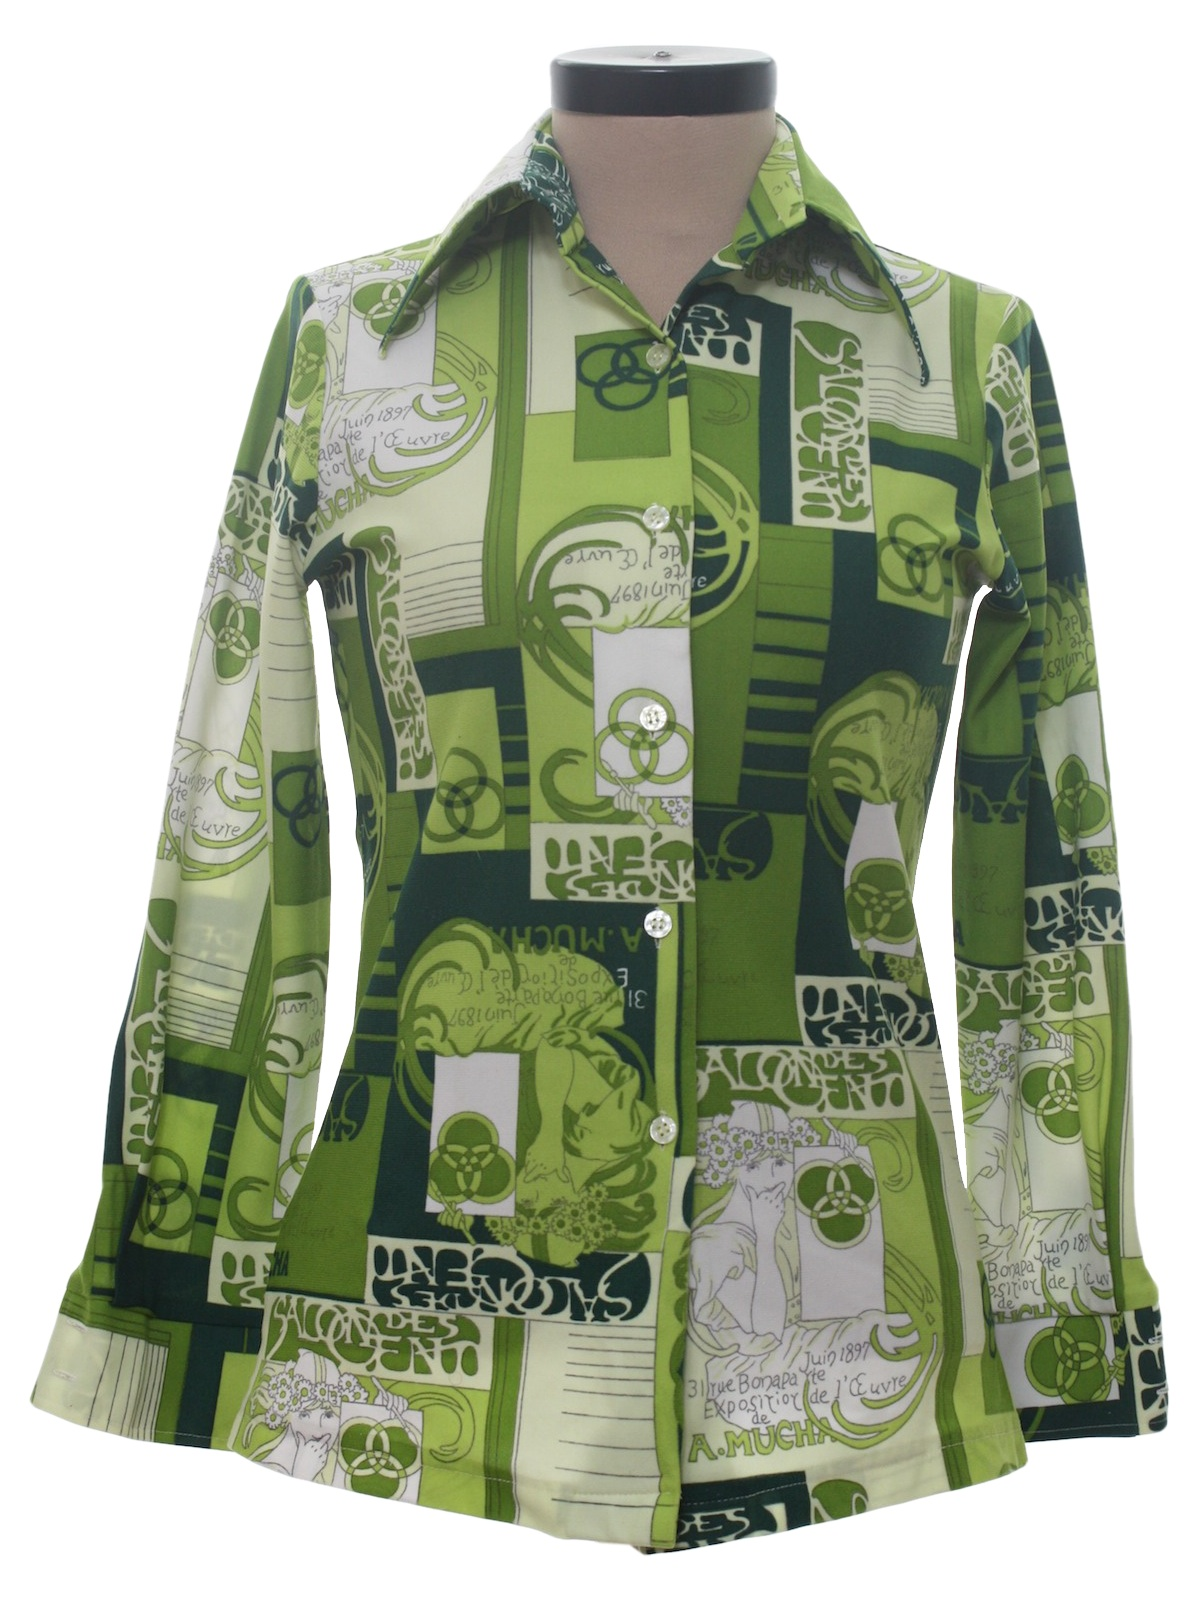 Retro Seventies Print Disco Shirt 70s Amy Barr Womens Green On